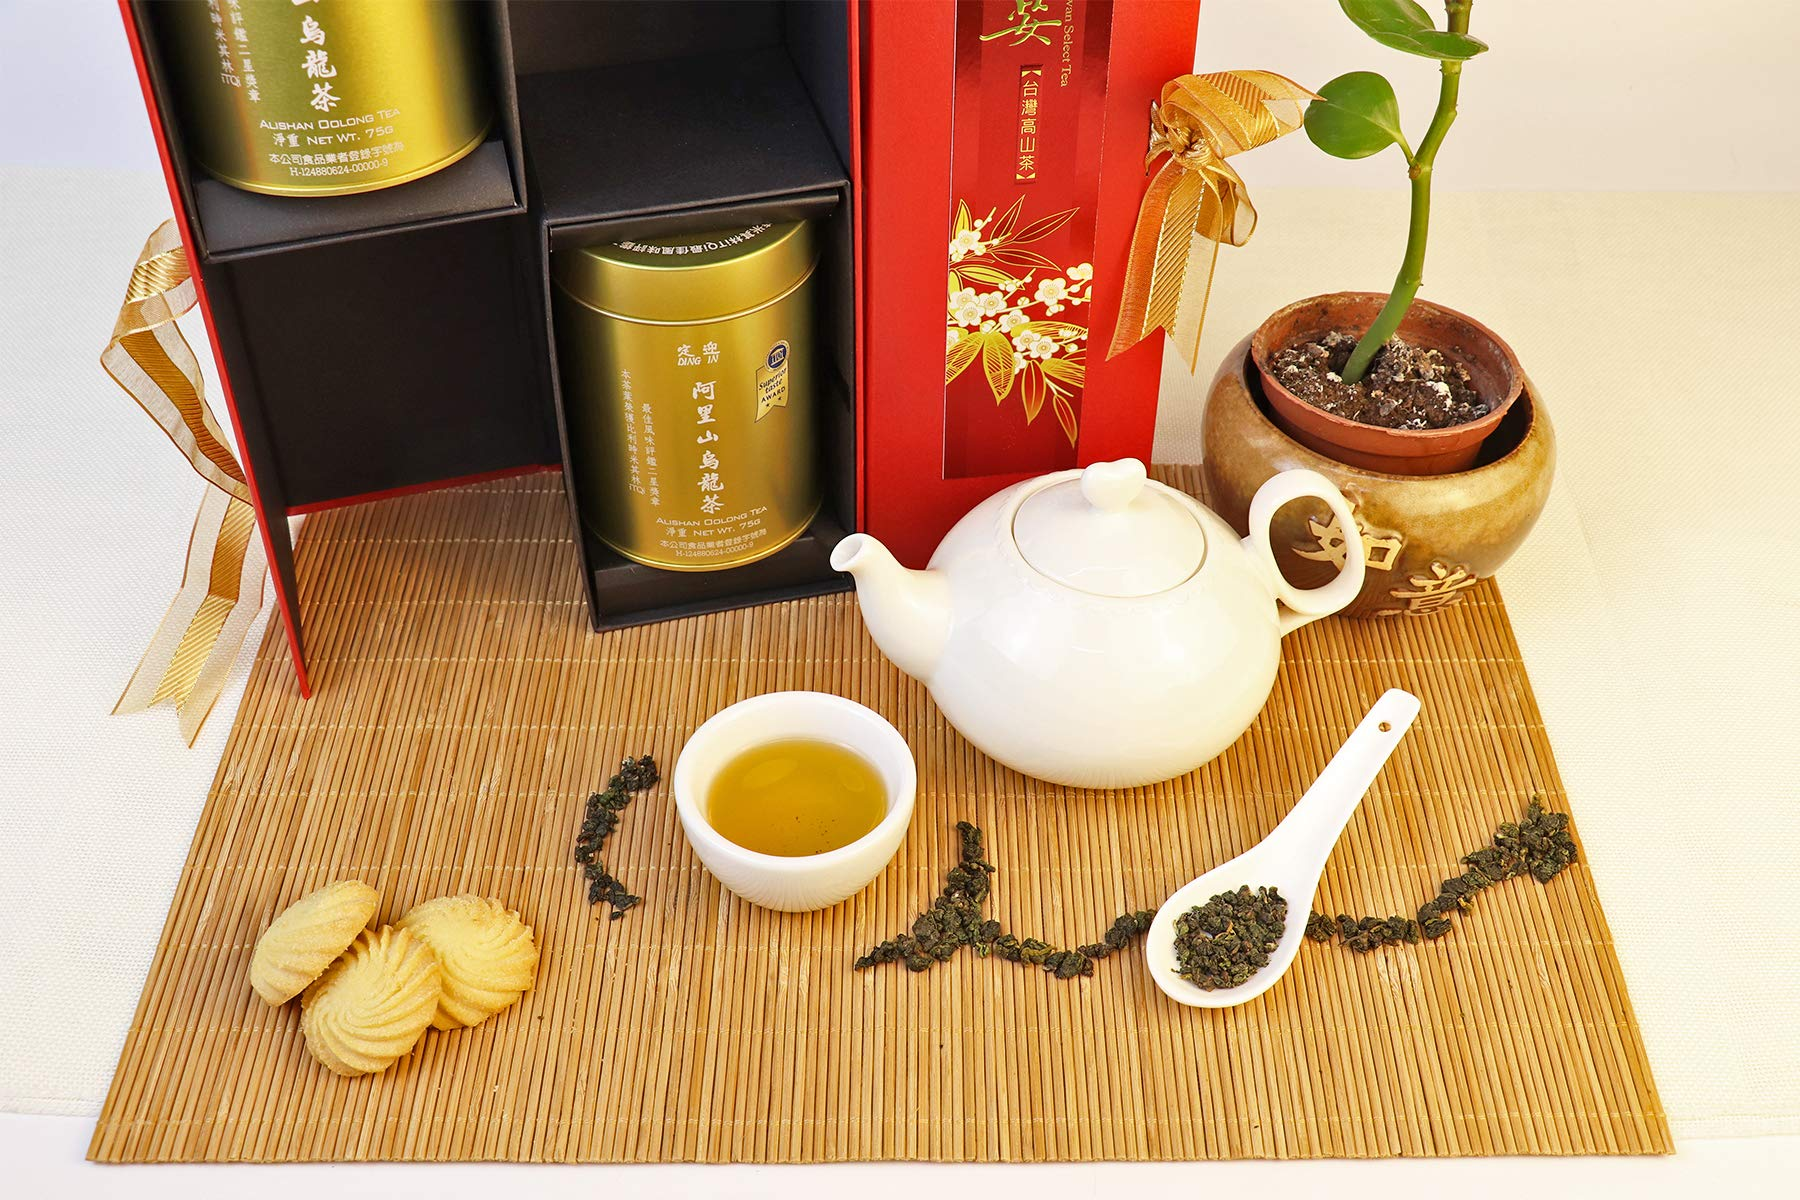 DING IN Alishan Oolong Tea Feast Straight Gift Box 75g/2cans by Ding In ltd. (Image #3)